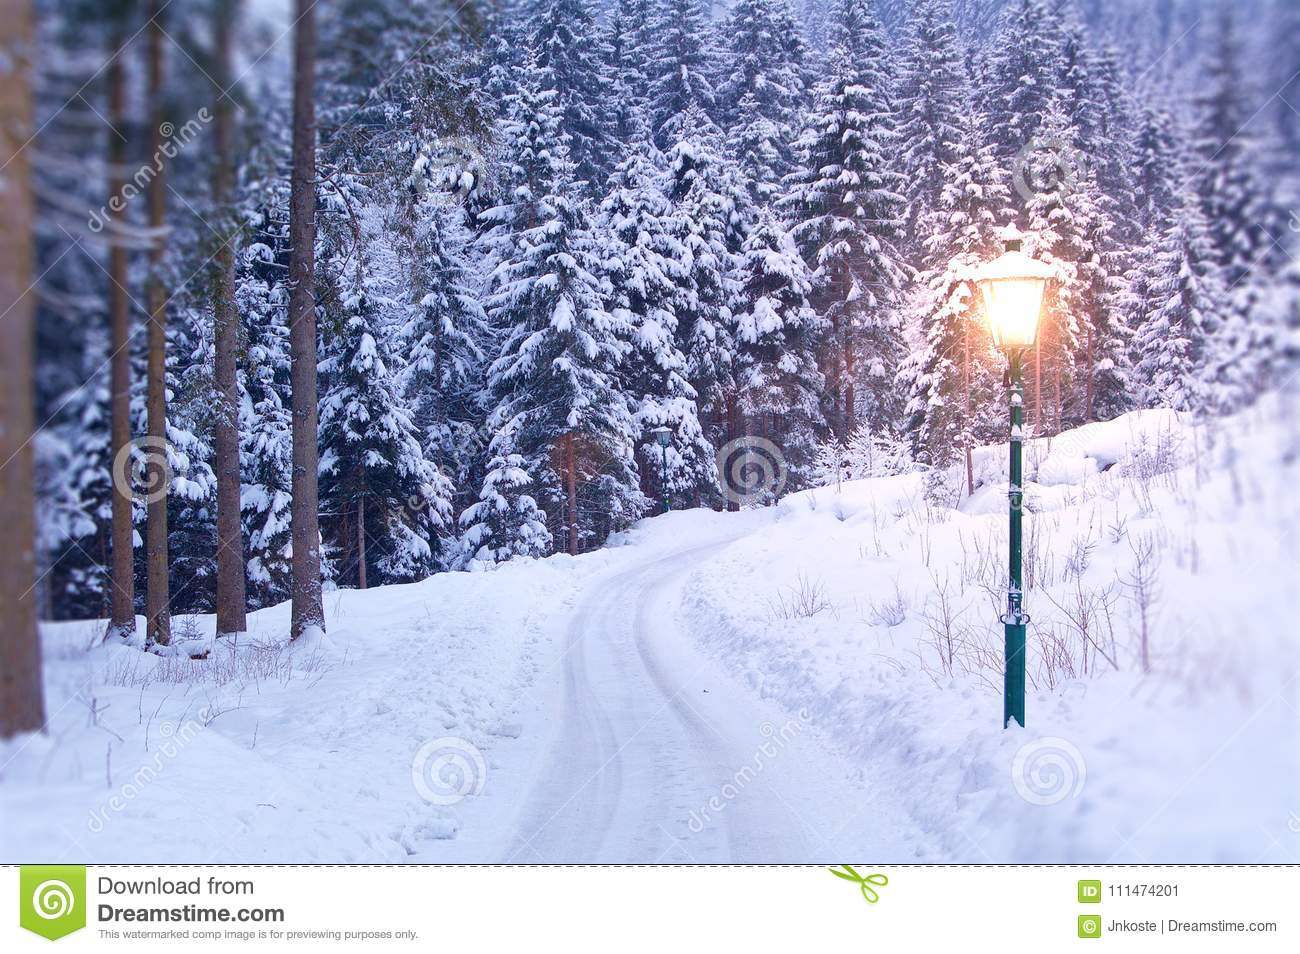 Narnia Country Photos Free Royalty Free Stock Photos From Dreamstime